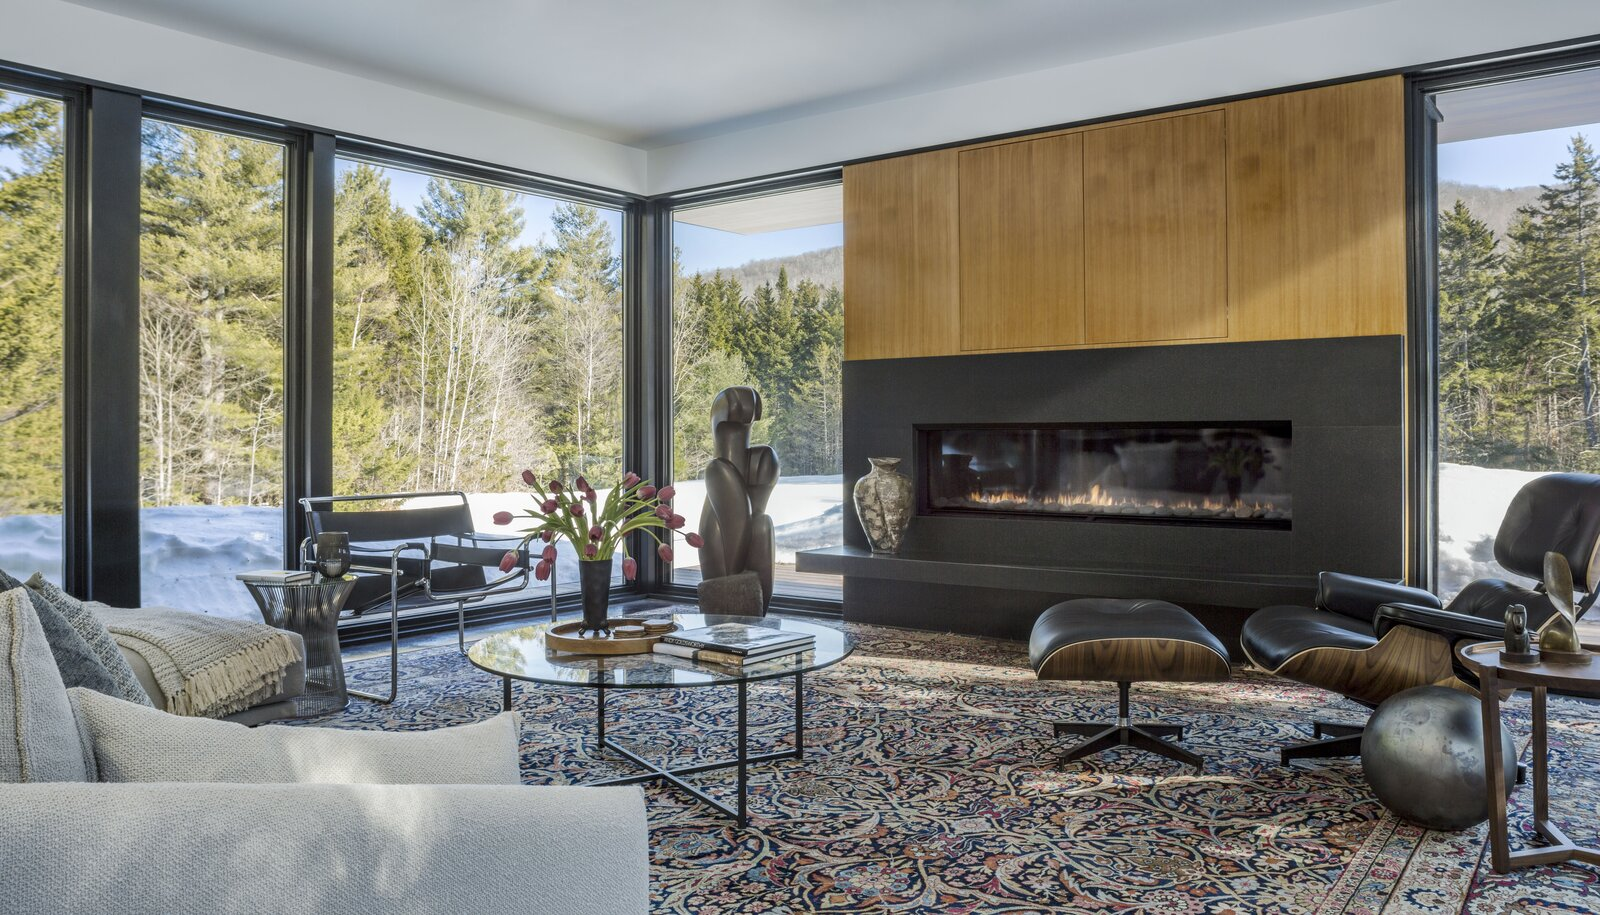 Living Room, Gas Burning Fireplace, Concrete Floor, Coffee Tables, Sofa, and Chair  Board & Batten by Birdseye